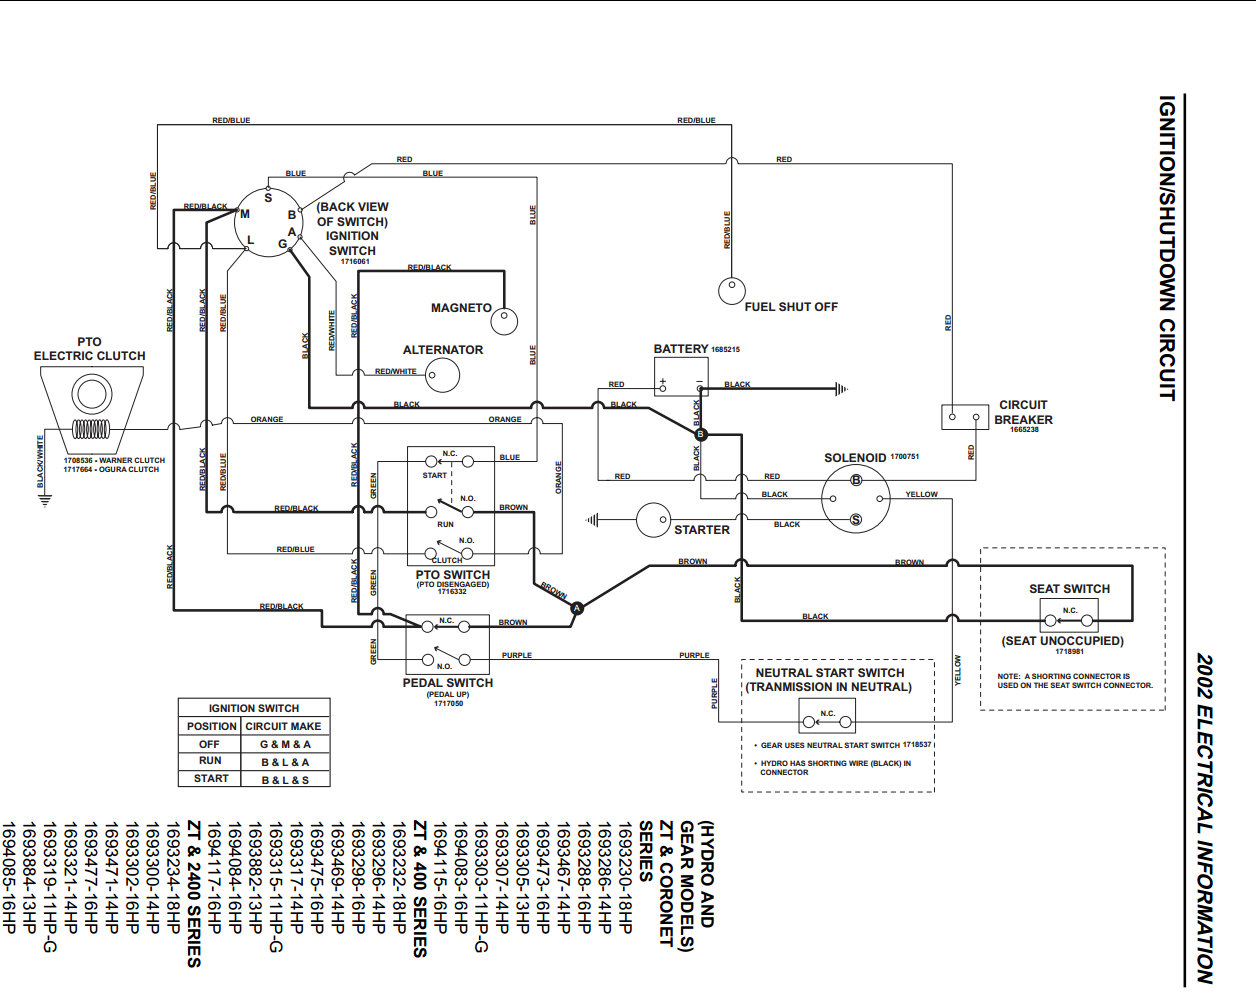 Wiring Diagram Simplicity Tractor 3416h